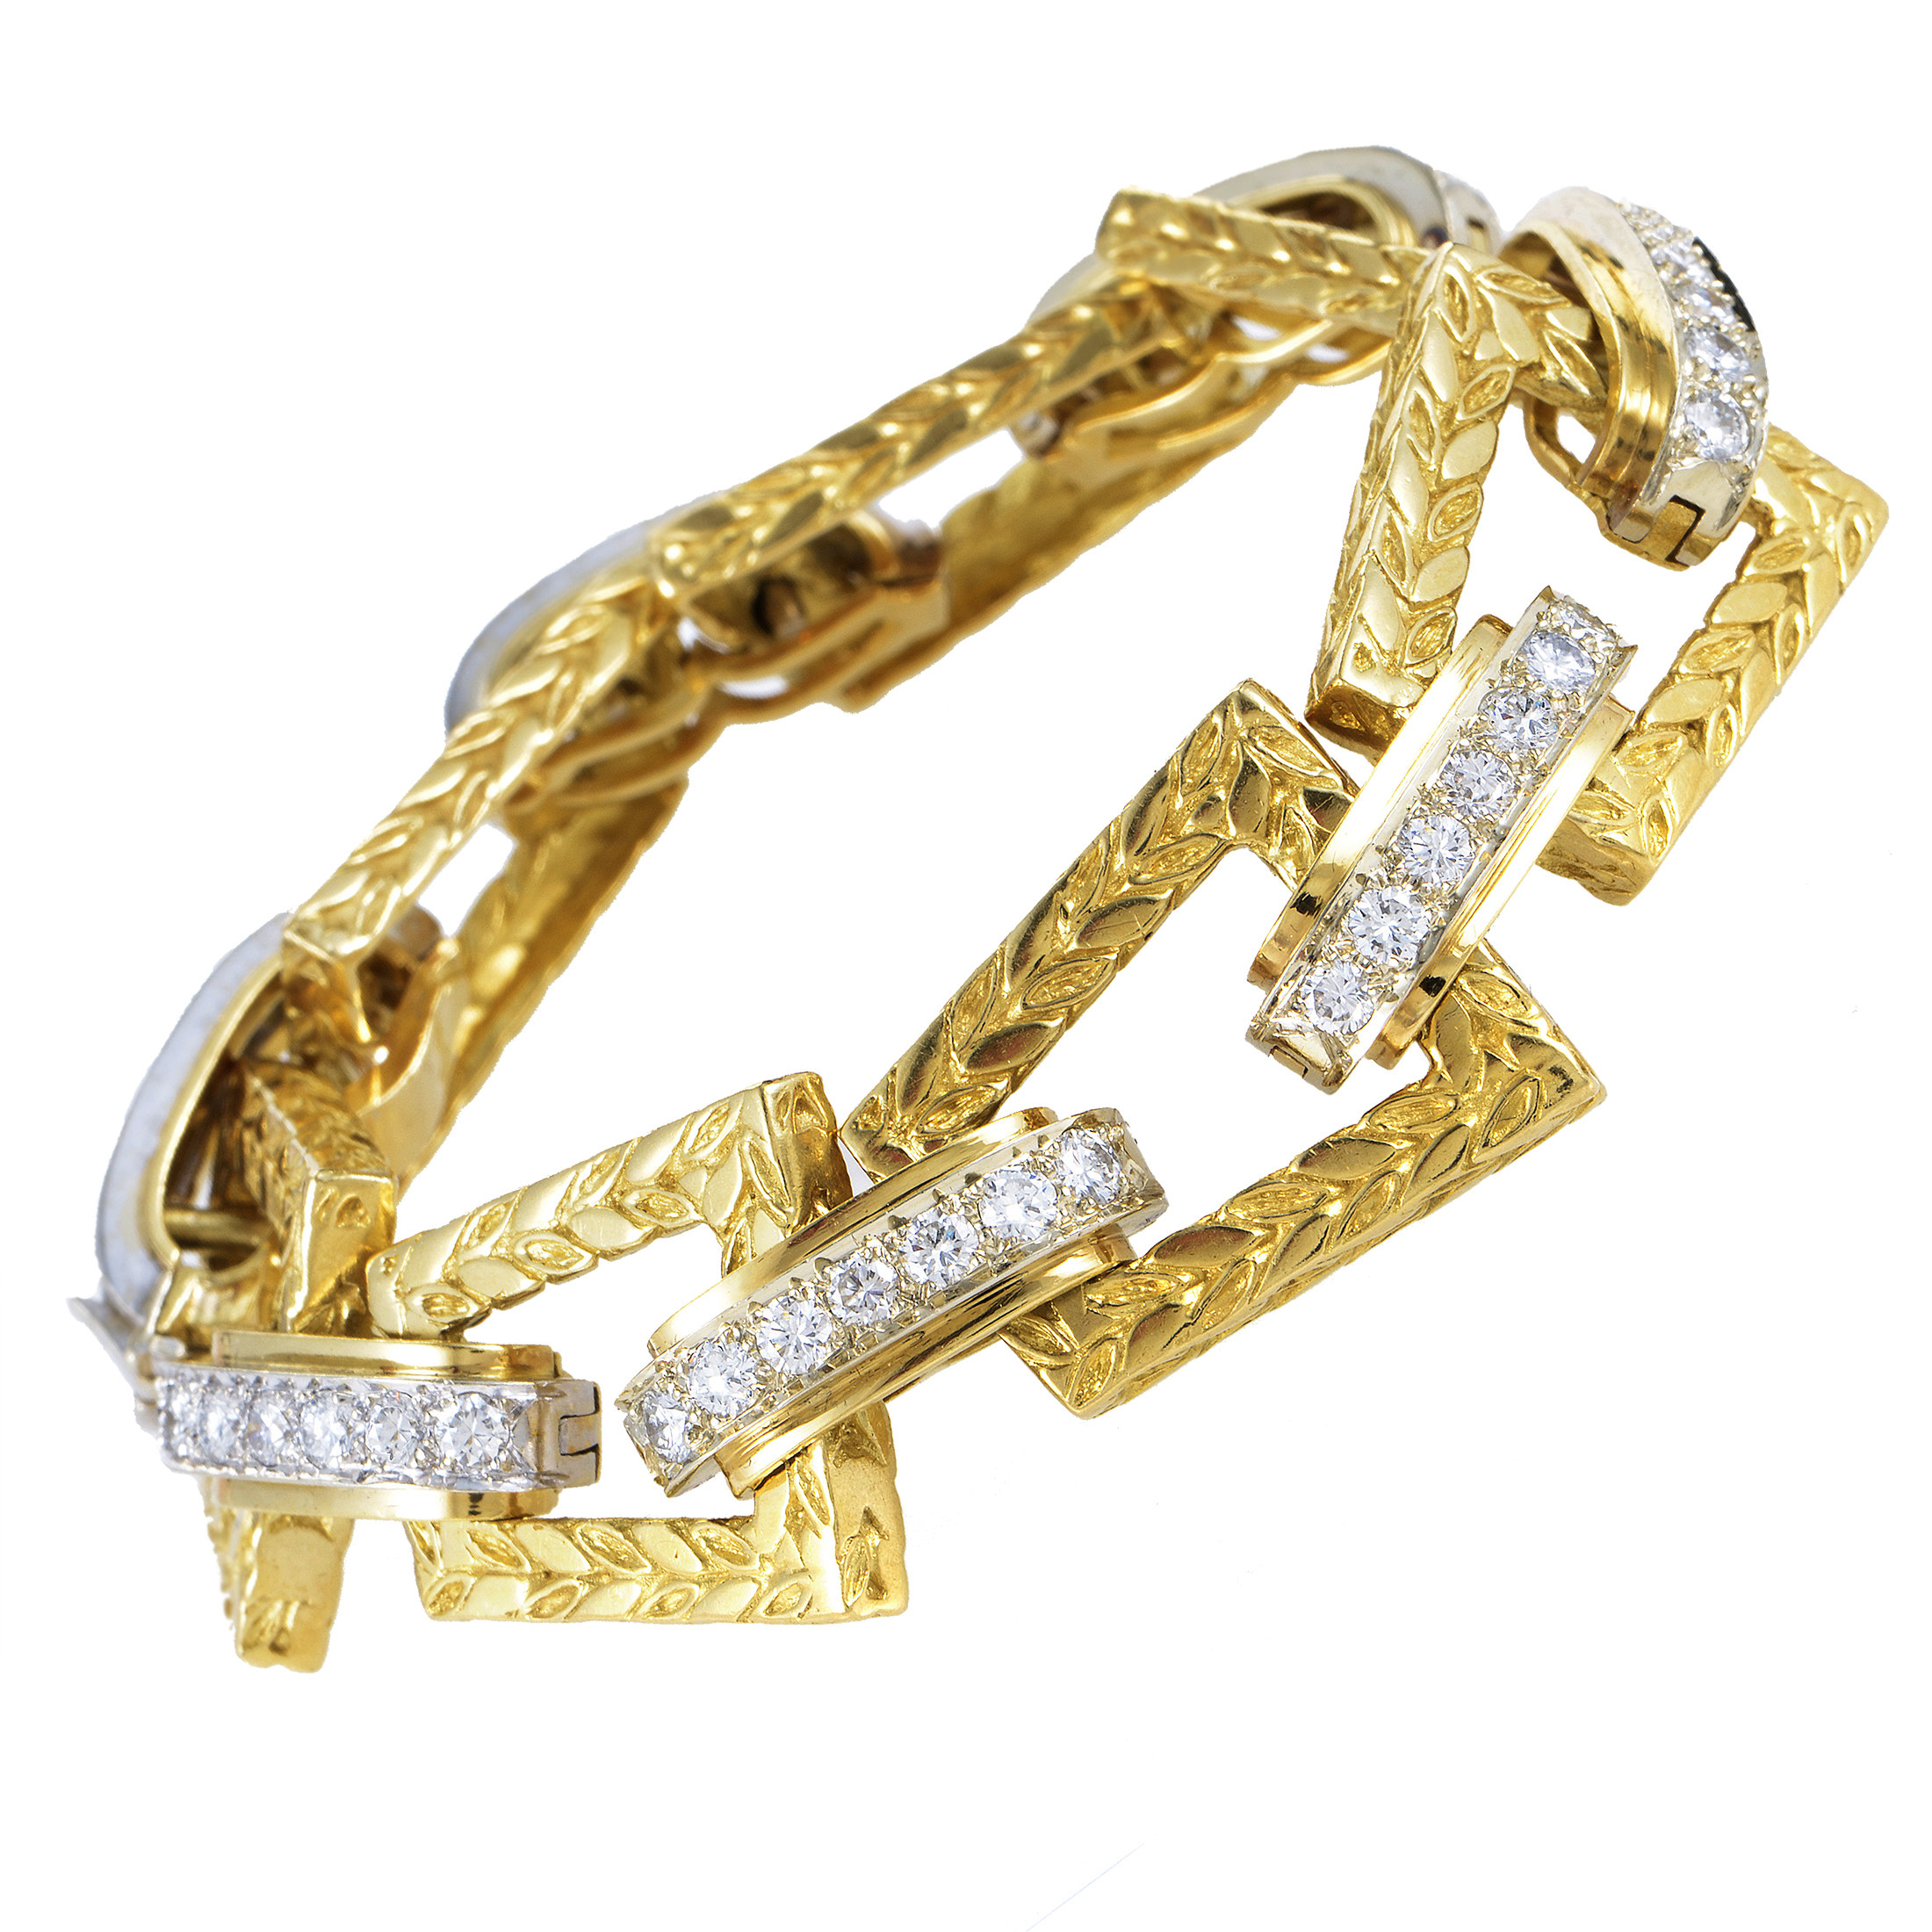 Hammerman Brothers Women's Vintage 18K Multi-Tone Gold Diamond Link Bracelet